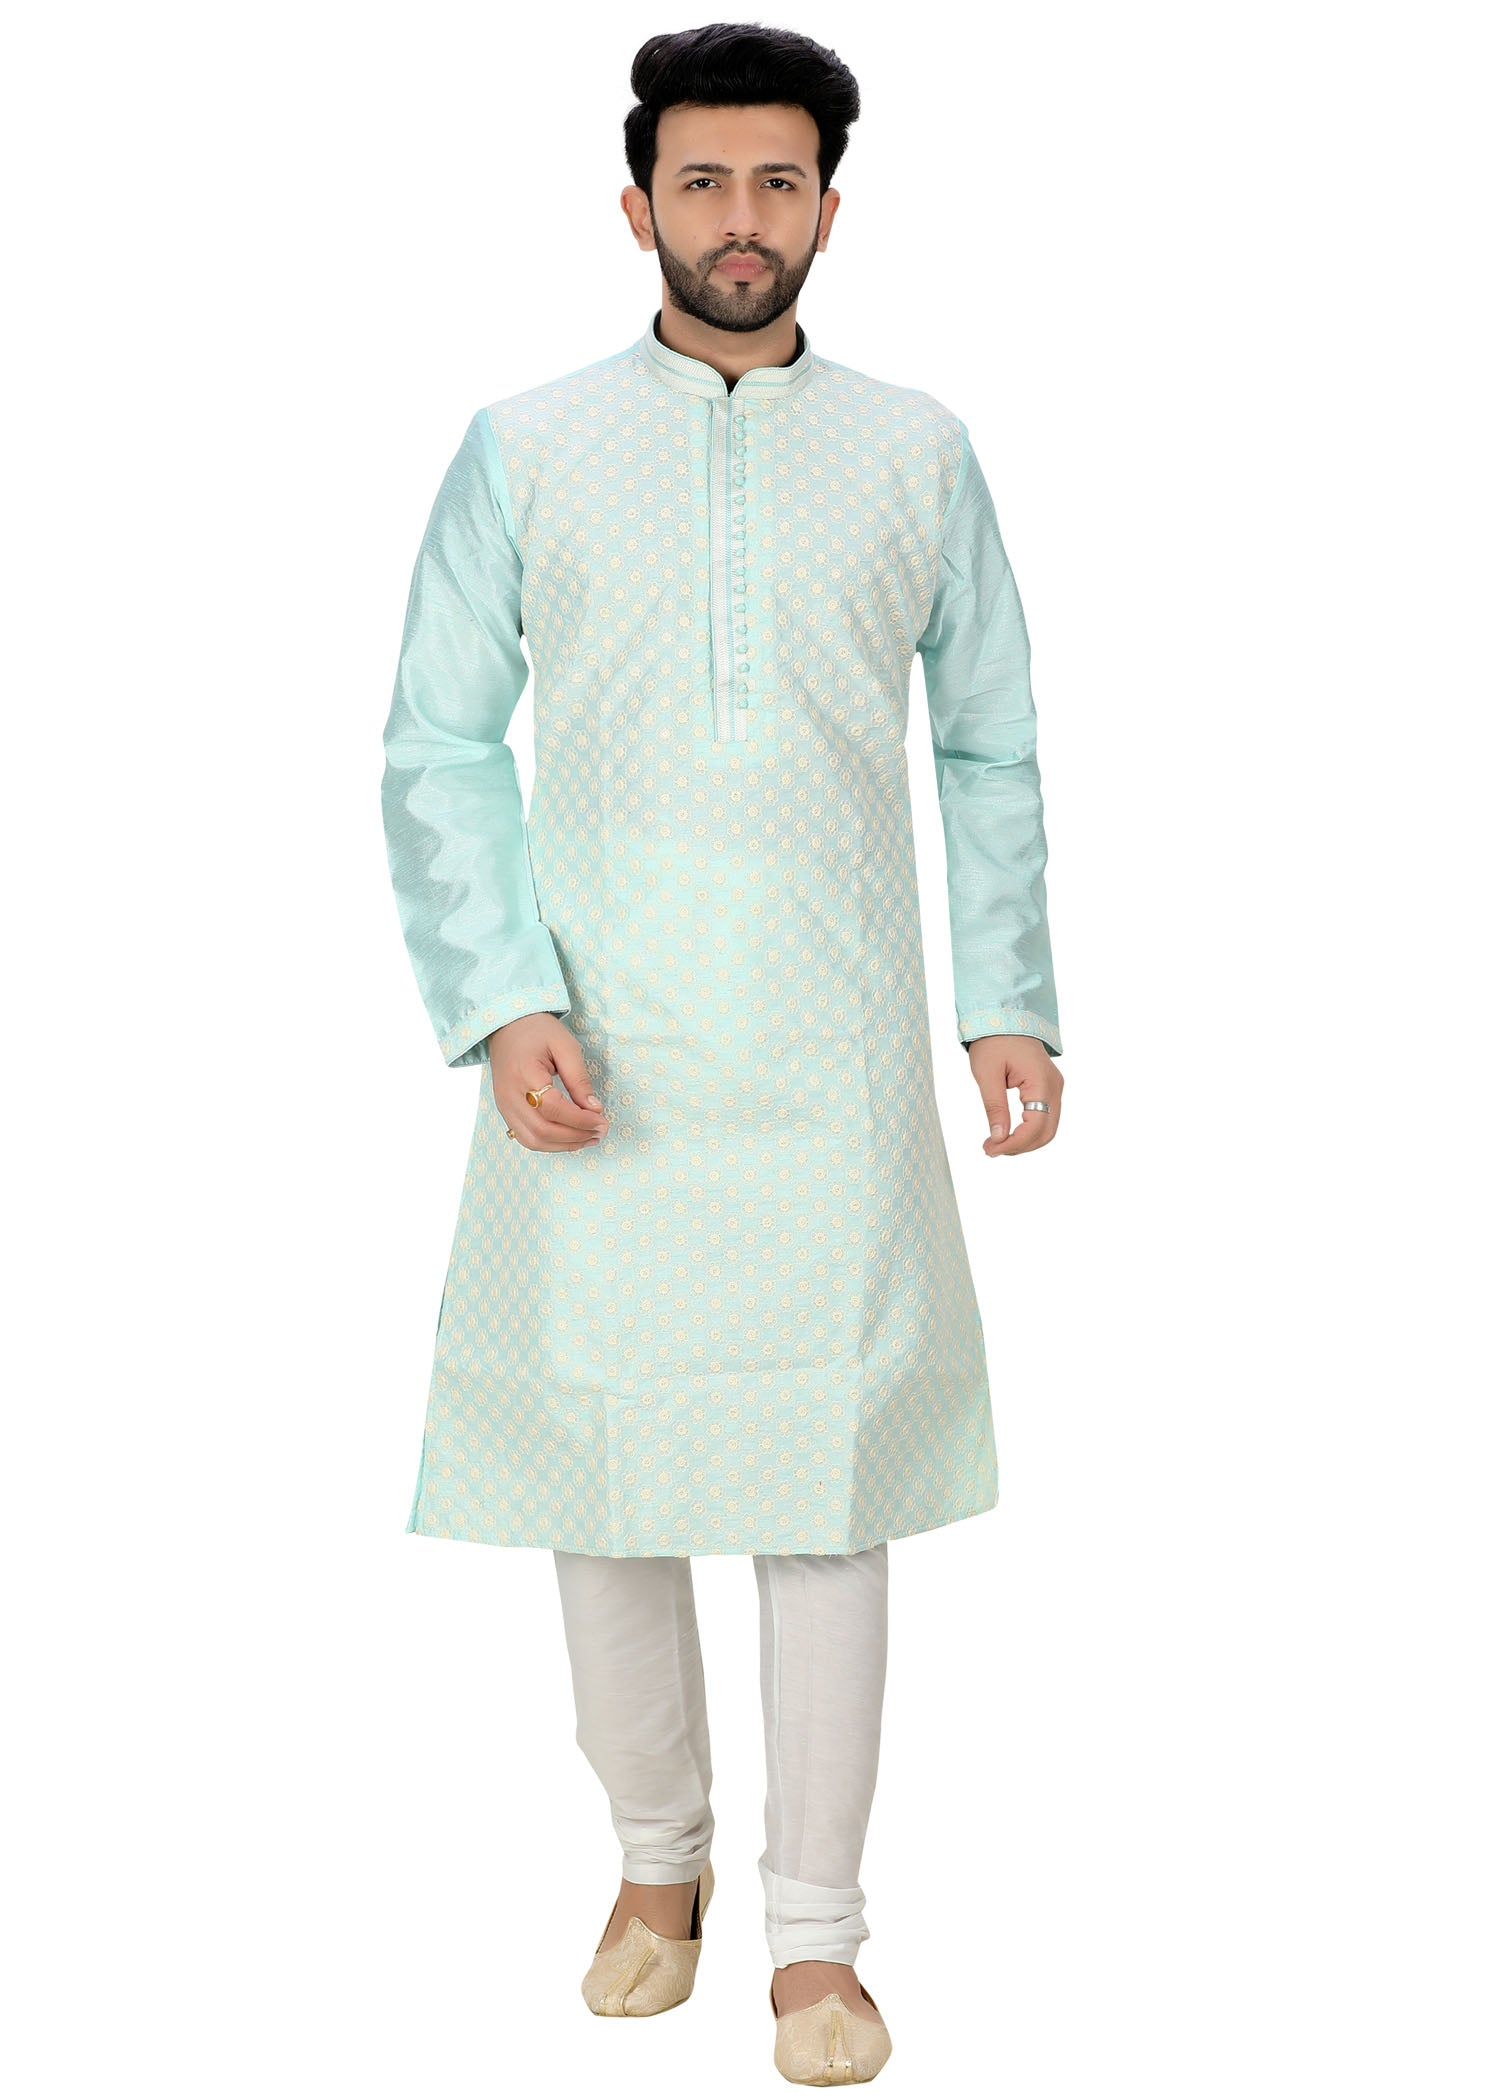 Dupion Silk Kurta Suit with Resham Work.